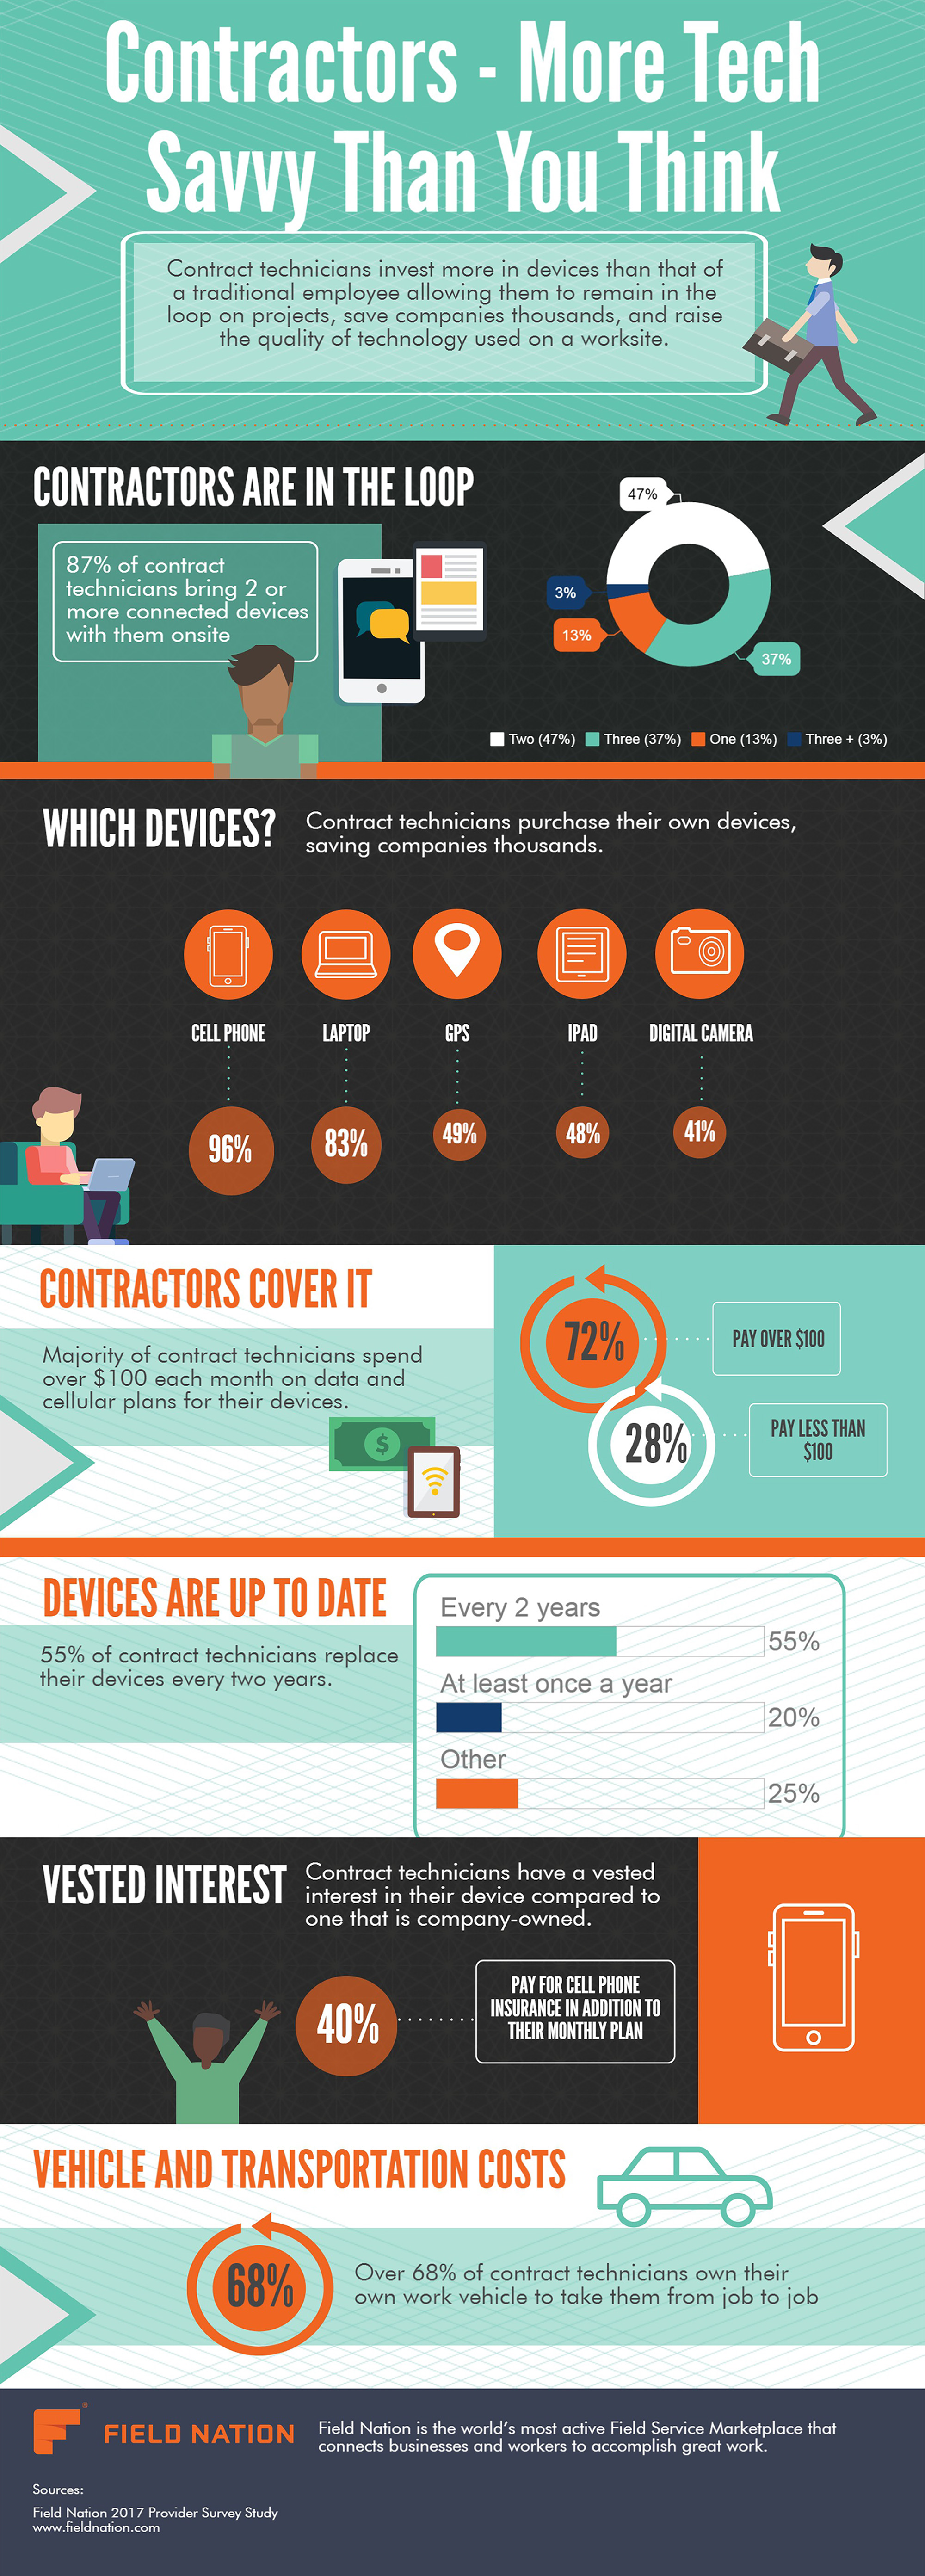 Contractors- More Tech Savvy Than You Think